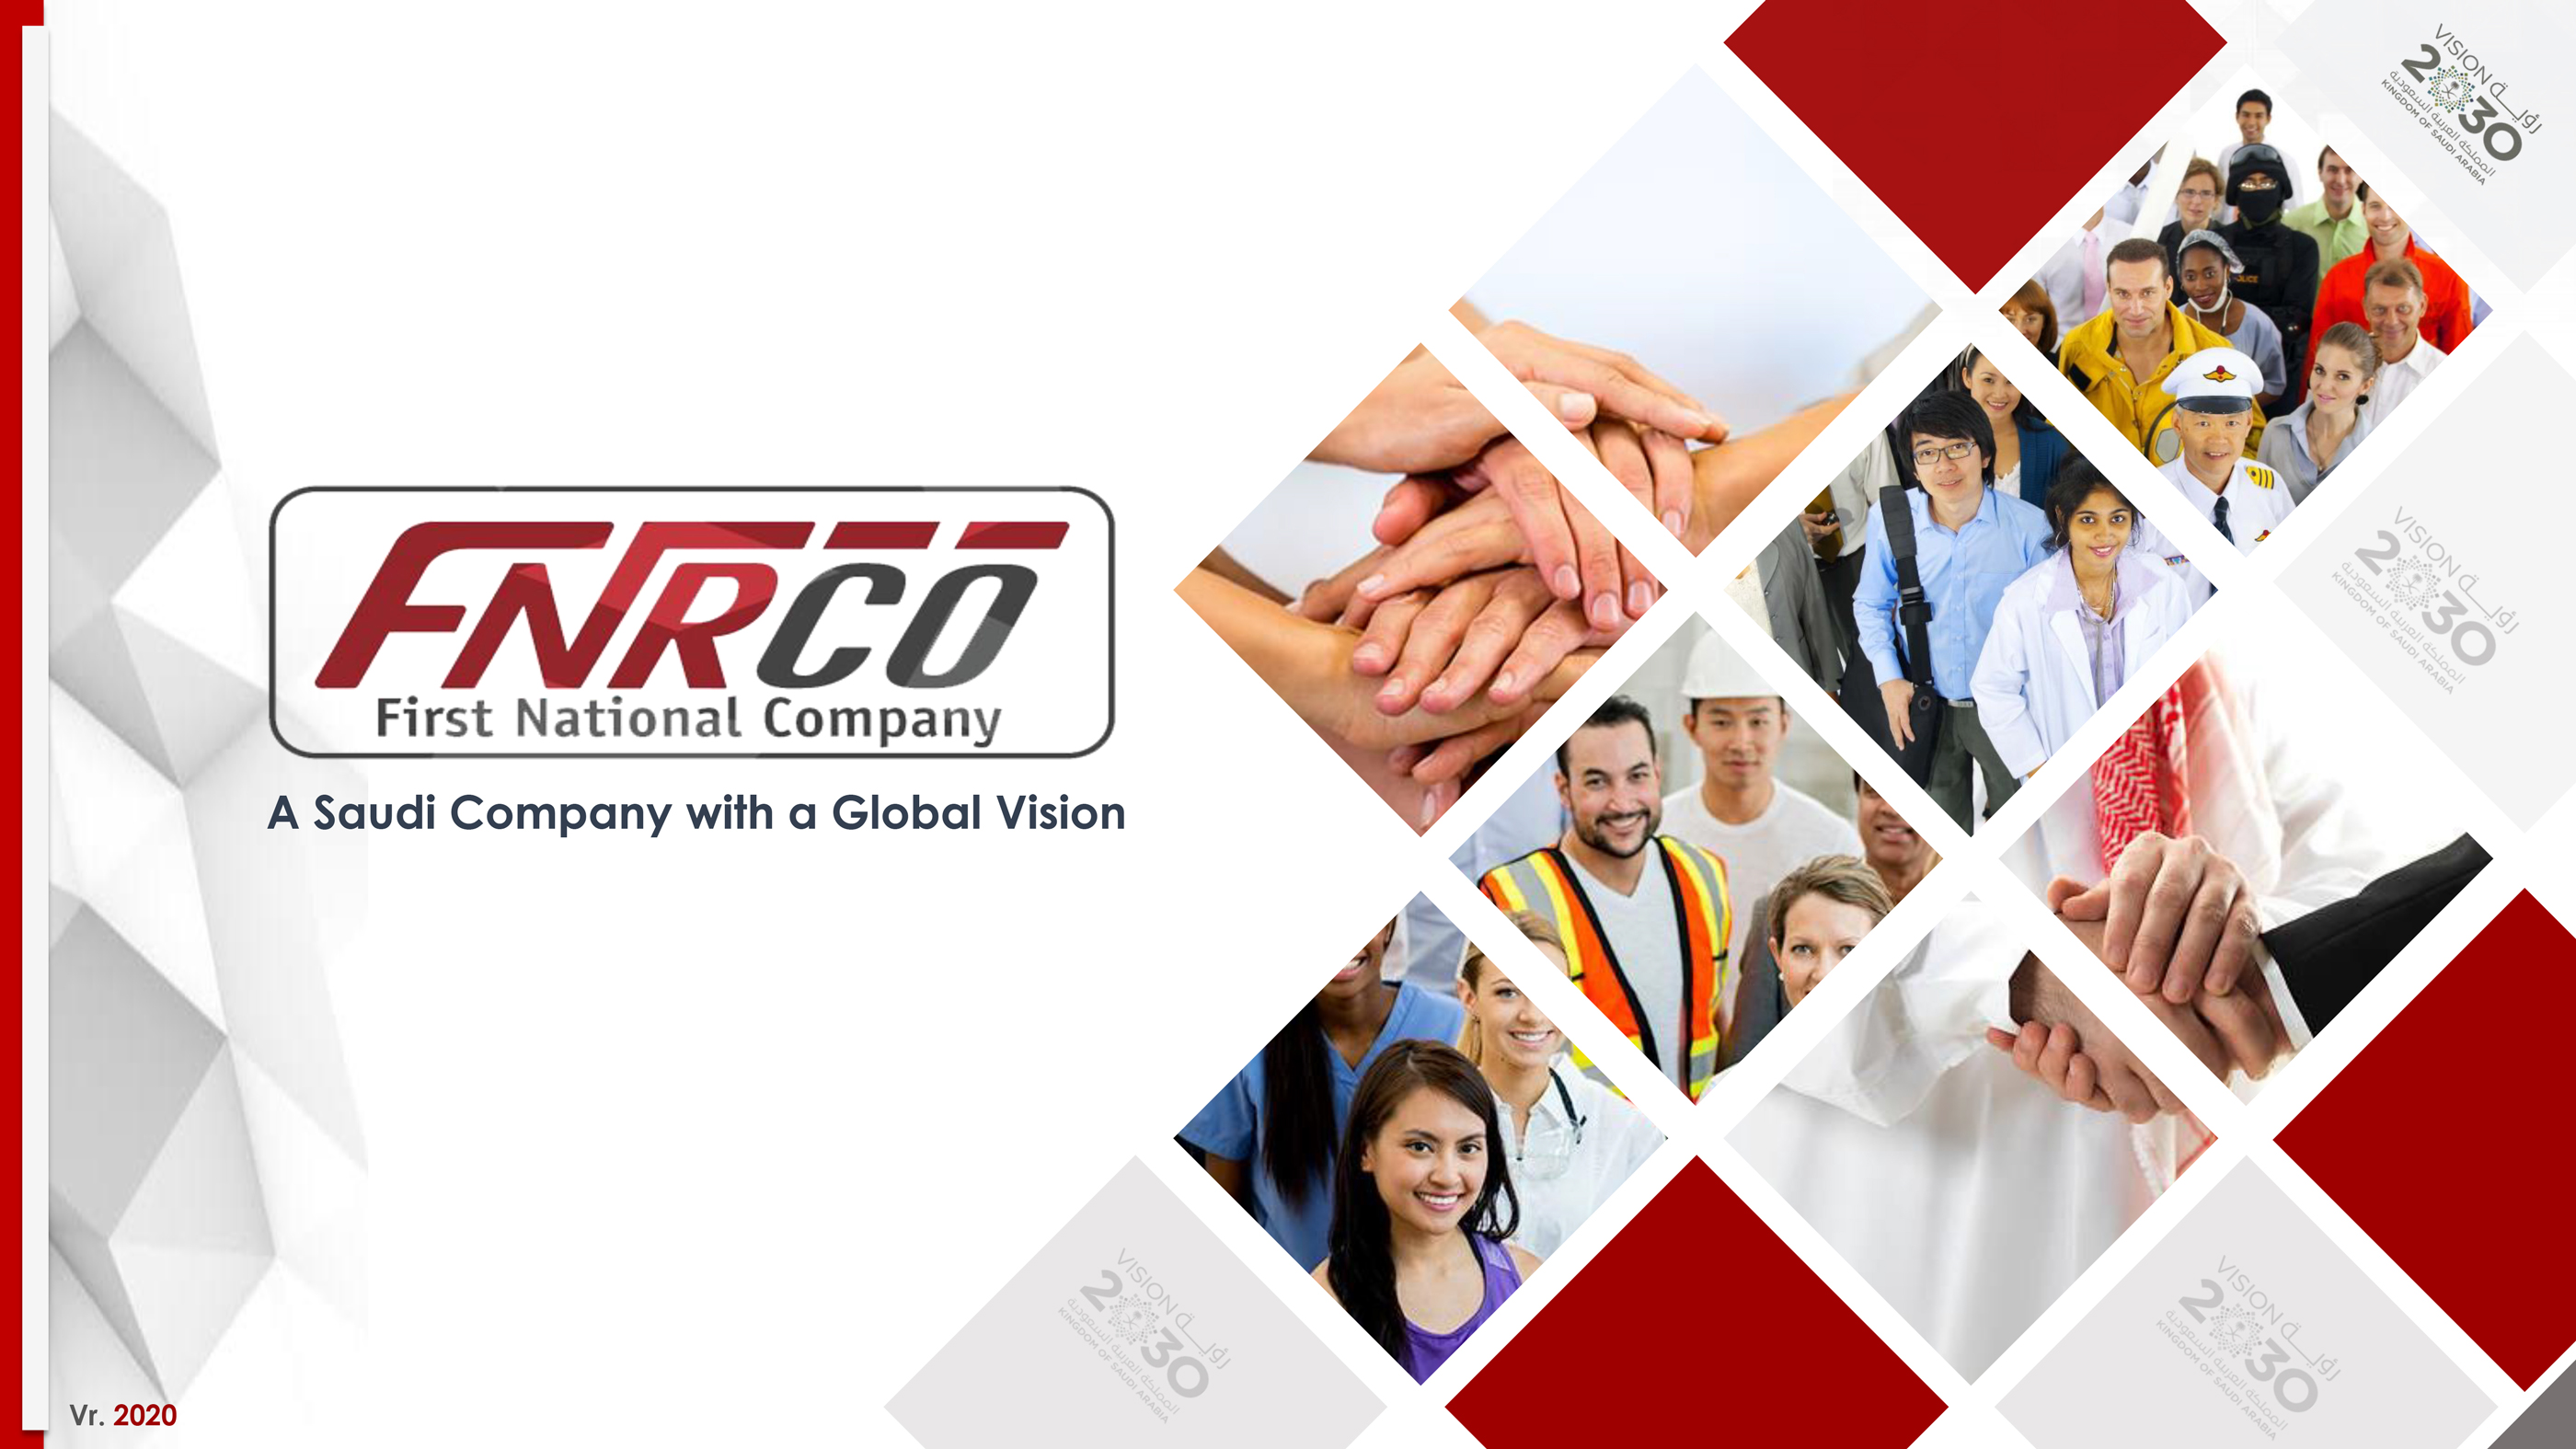 Image result for First National Company - FNRCO, Saudi Arabia